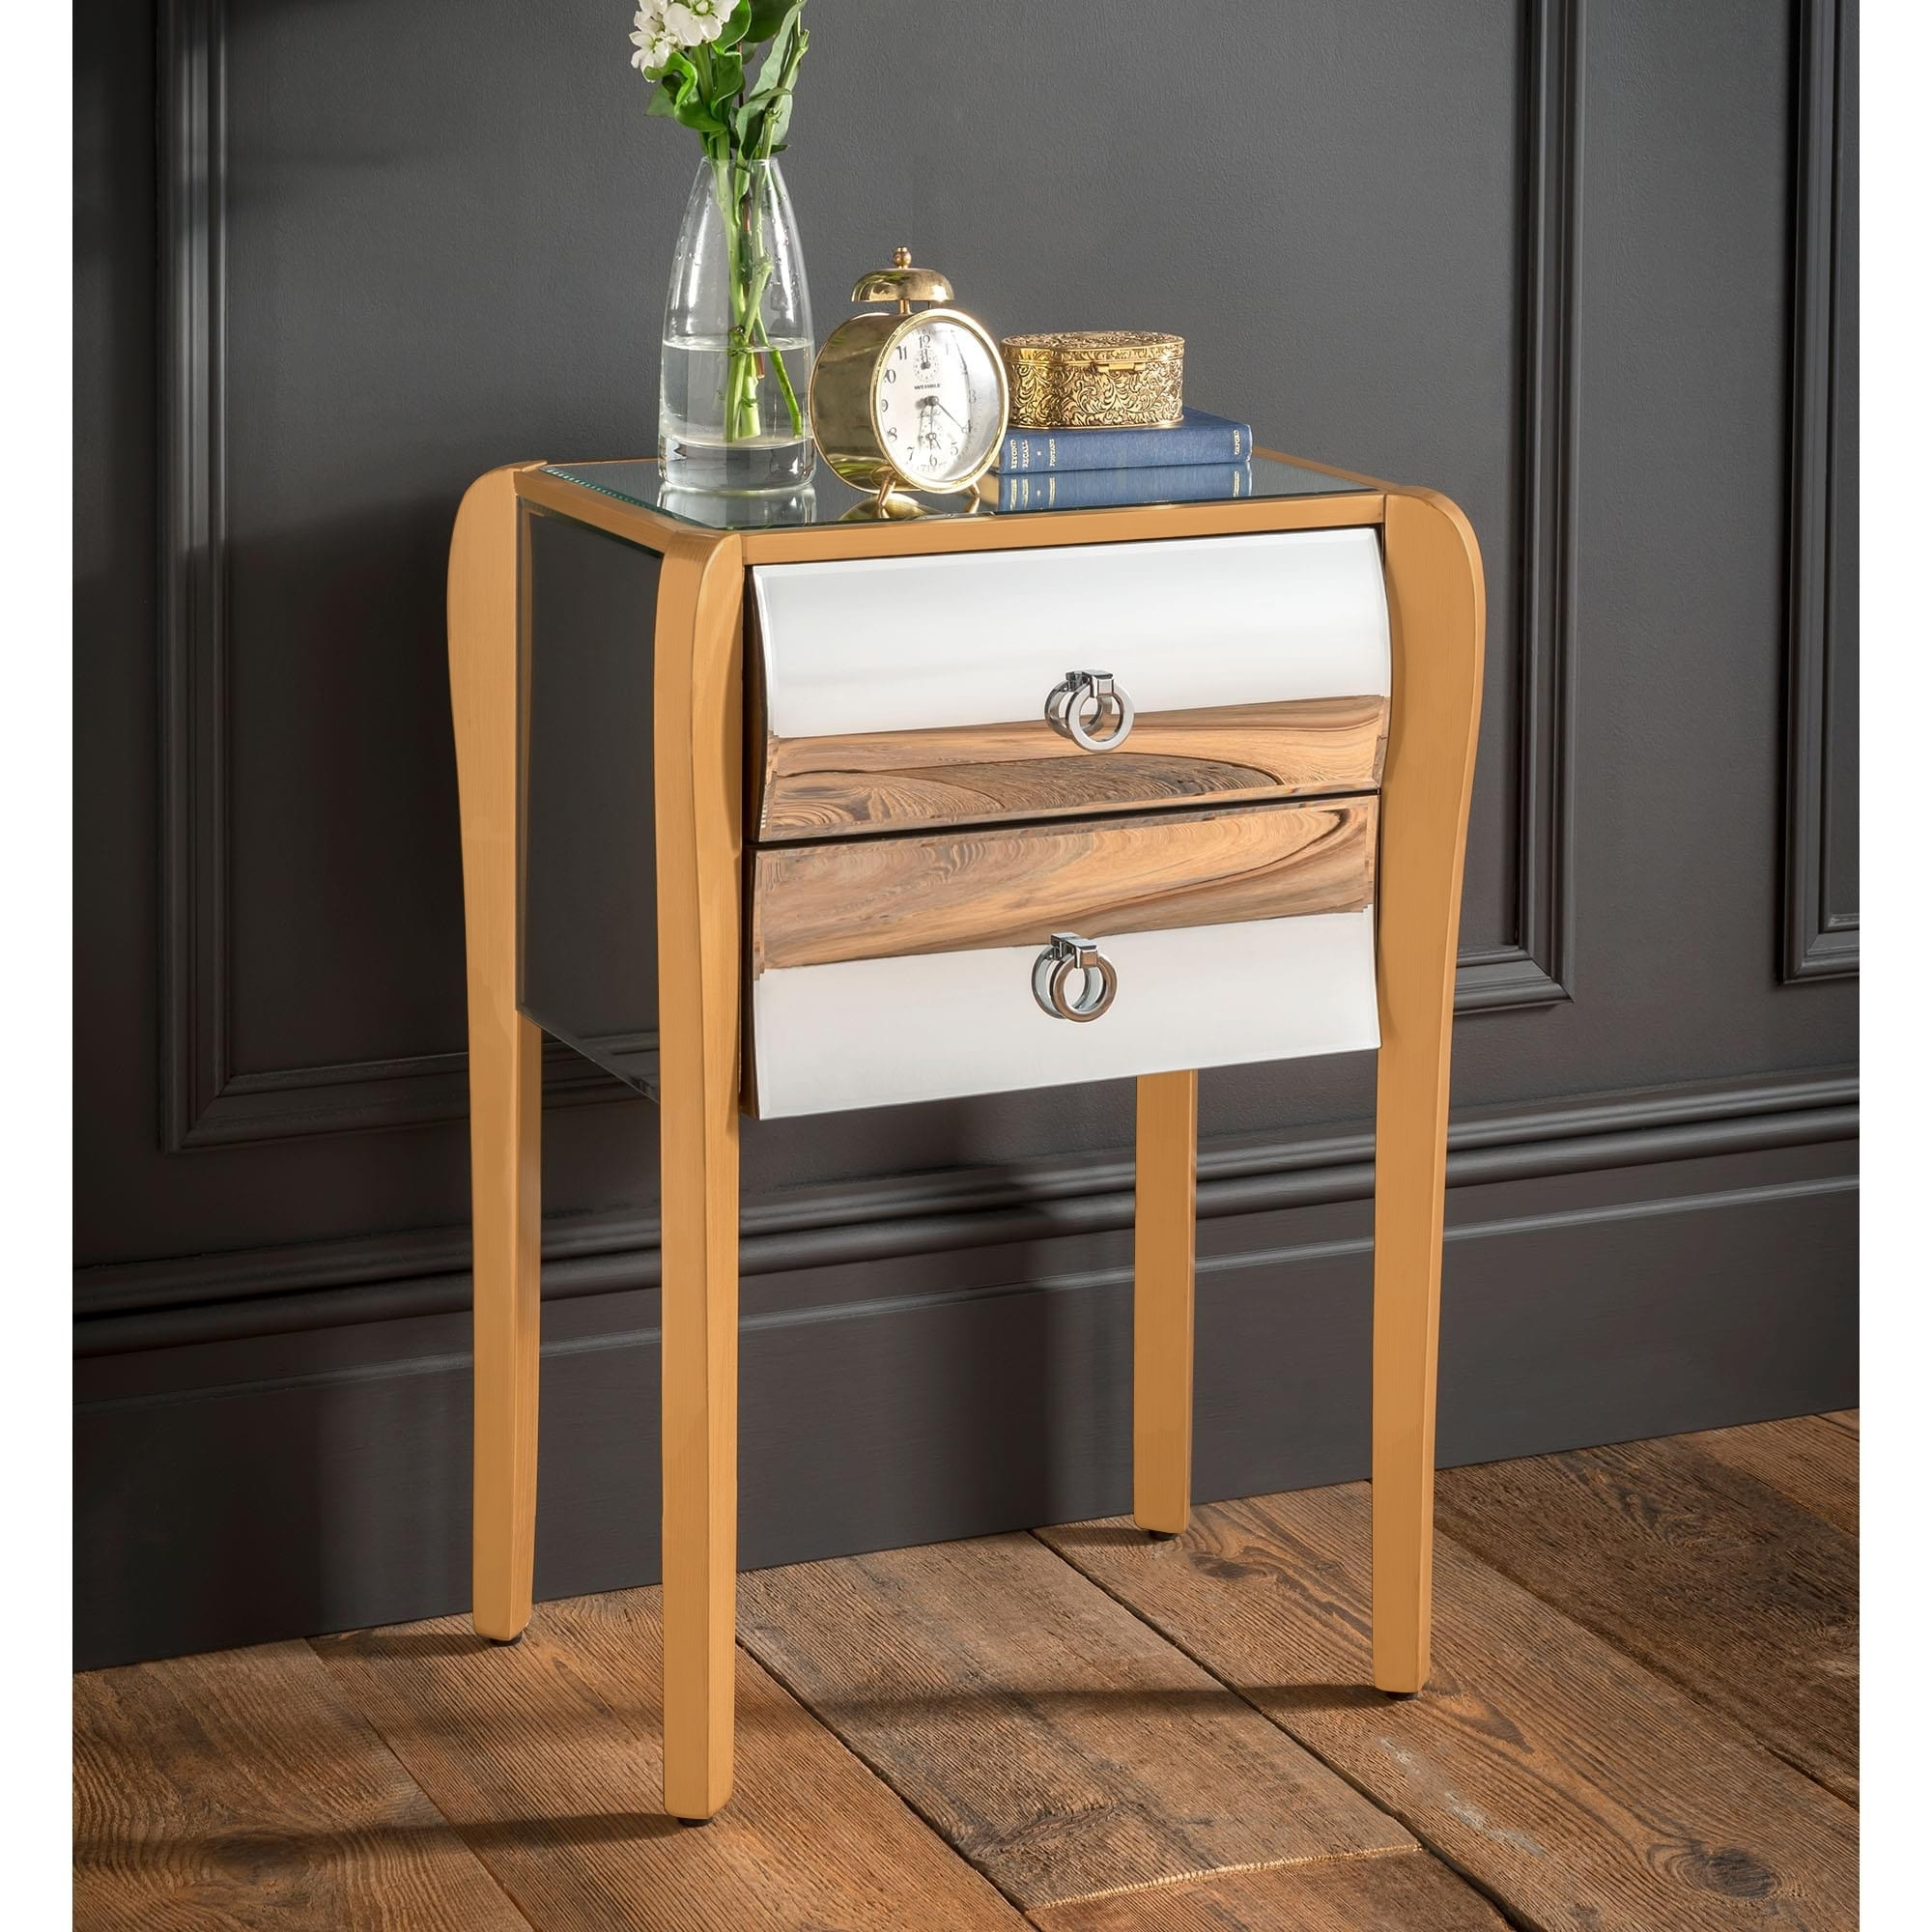 Mirrored Gold Frame Bedside Table